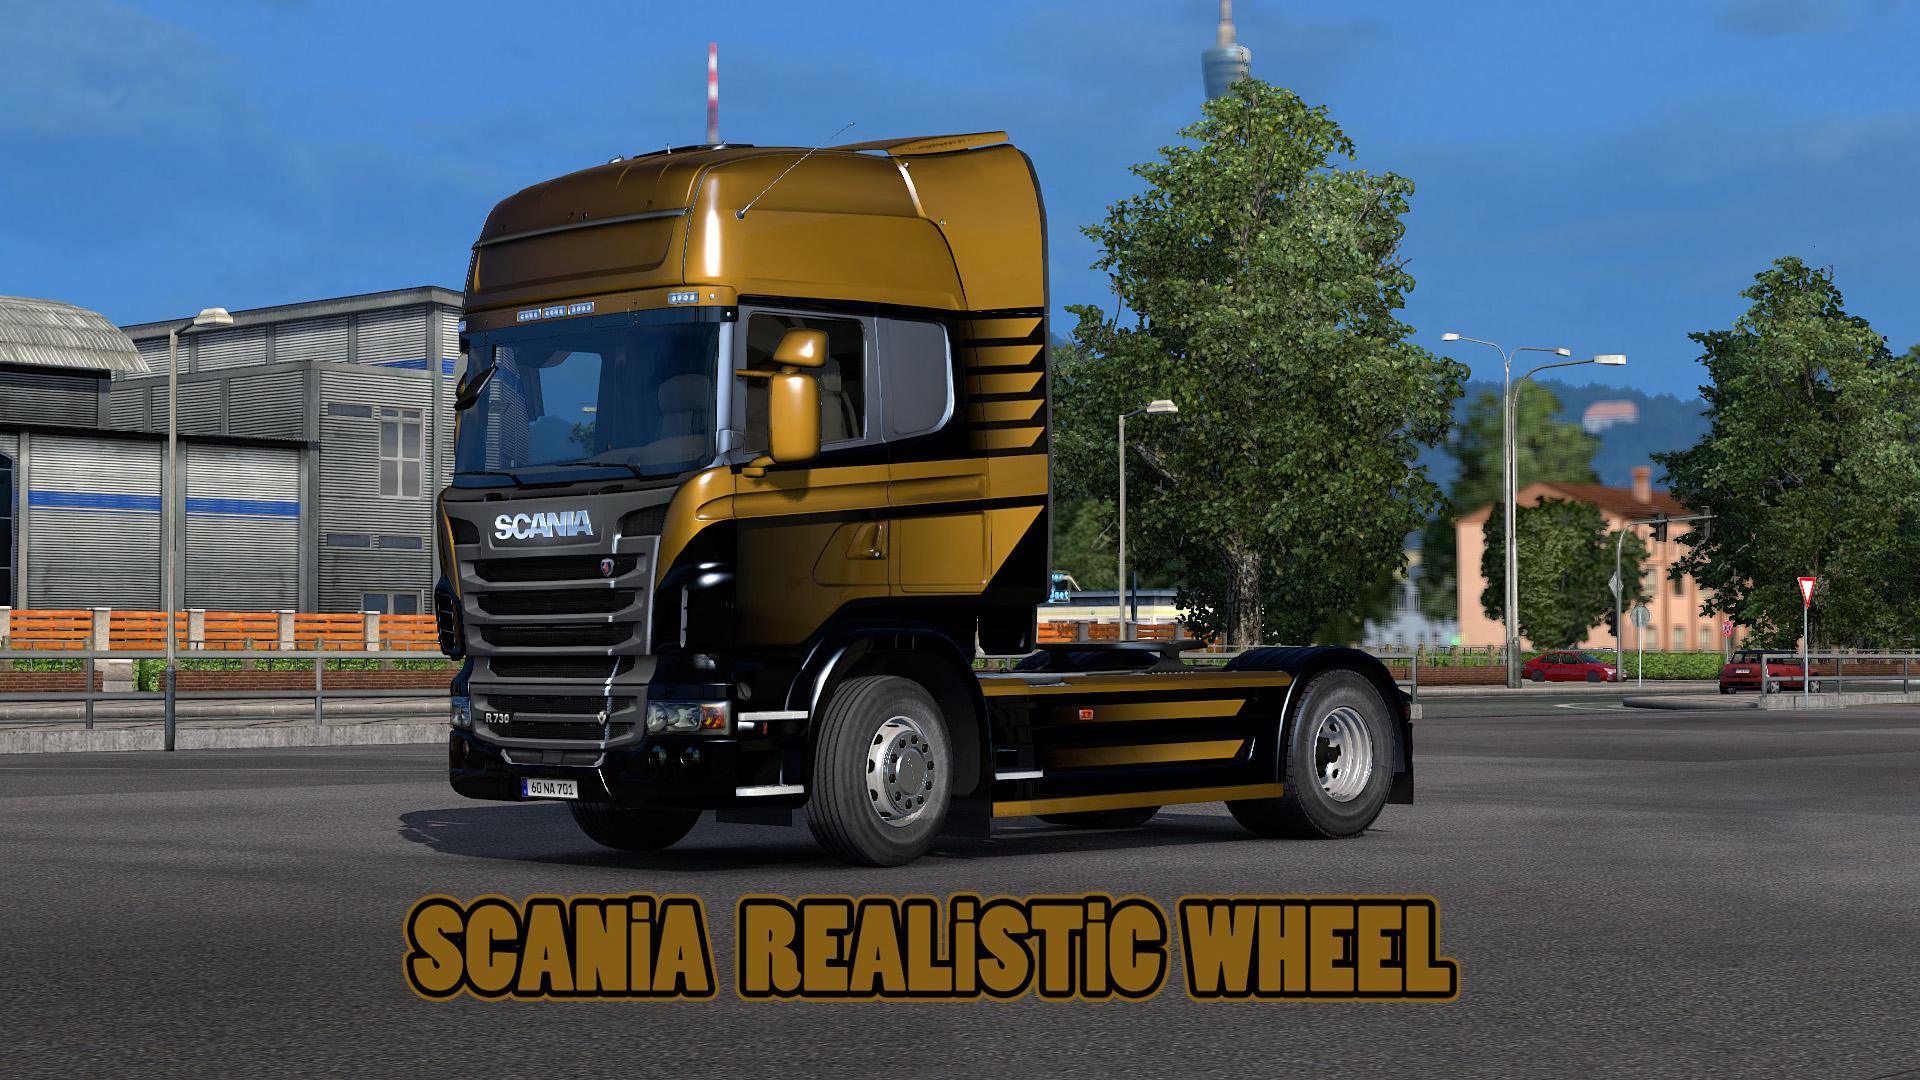 scania-realistic-wheels_1